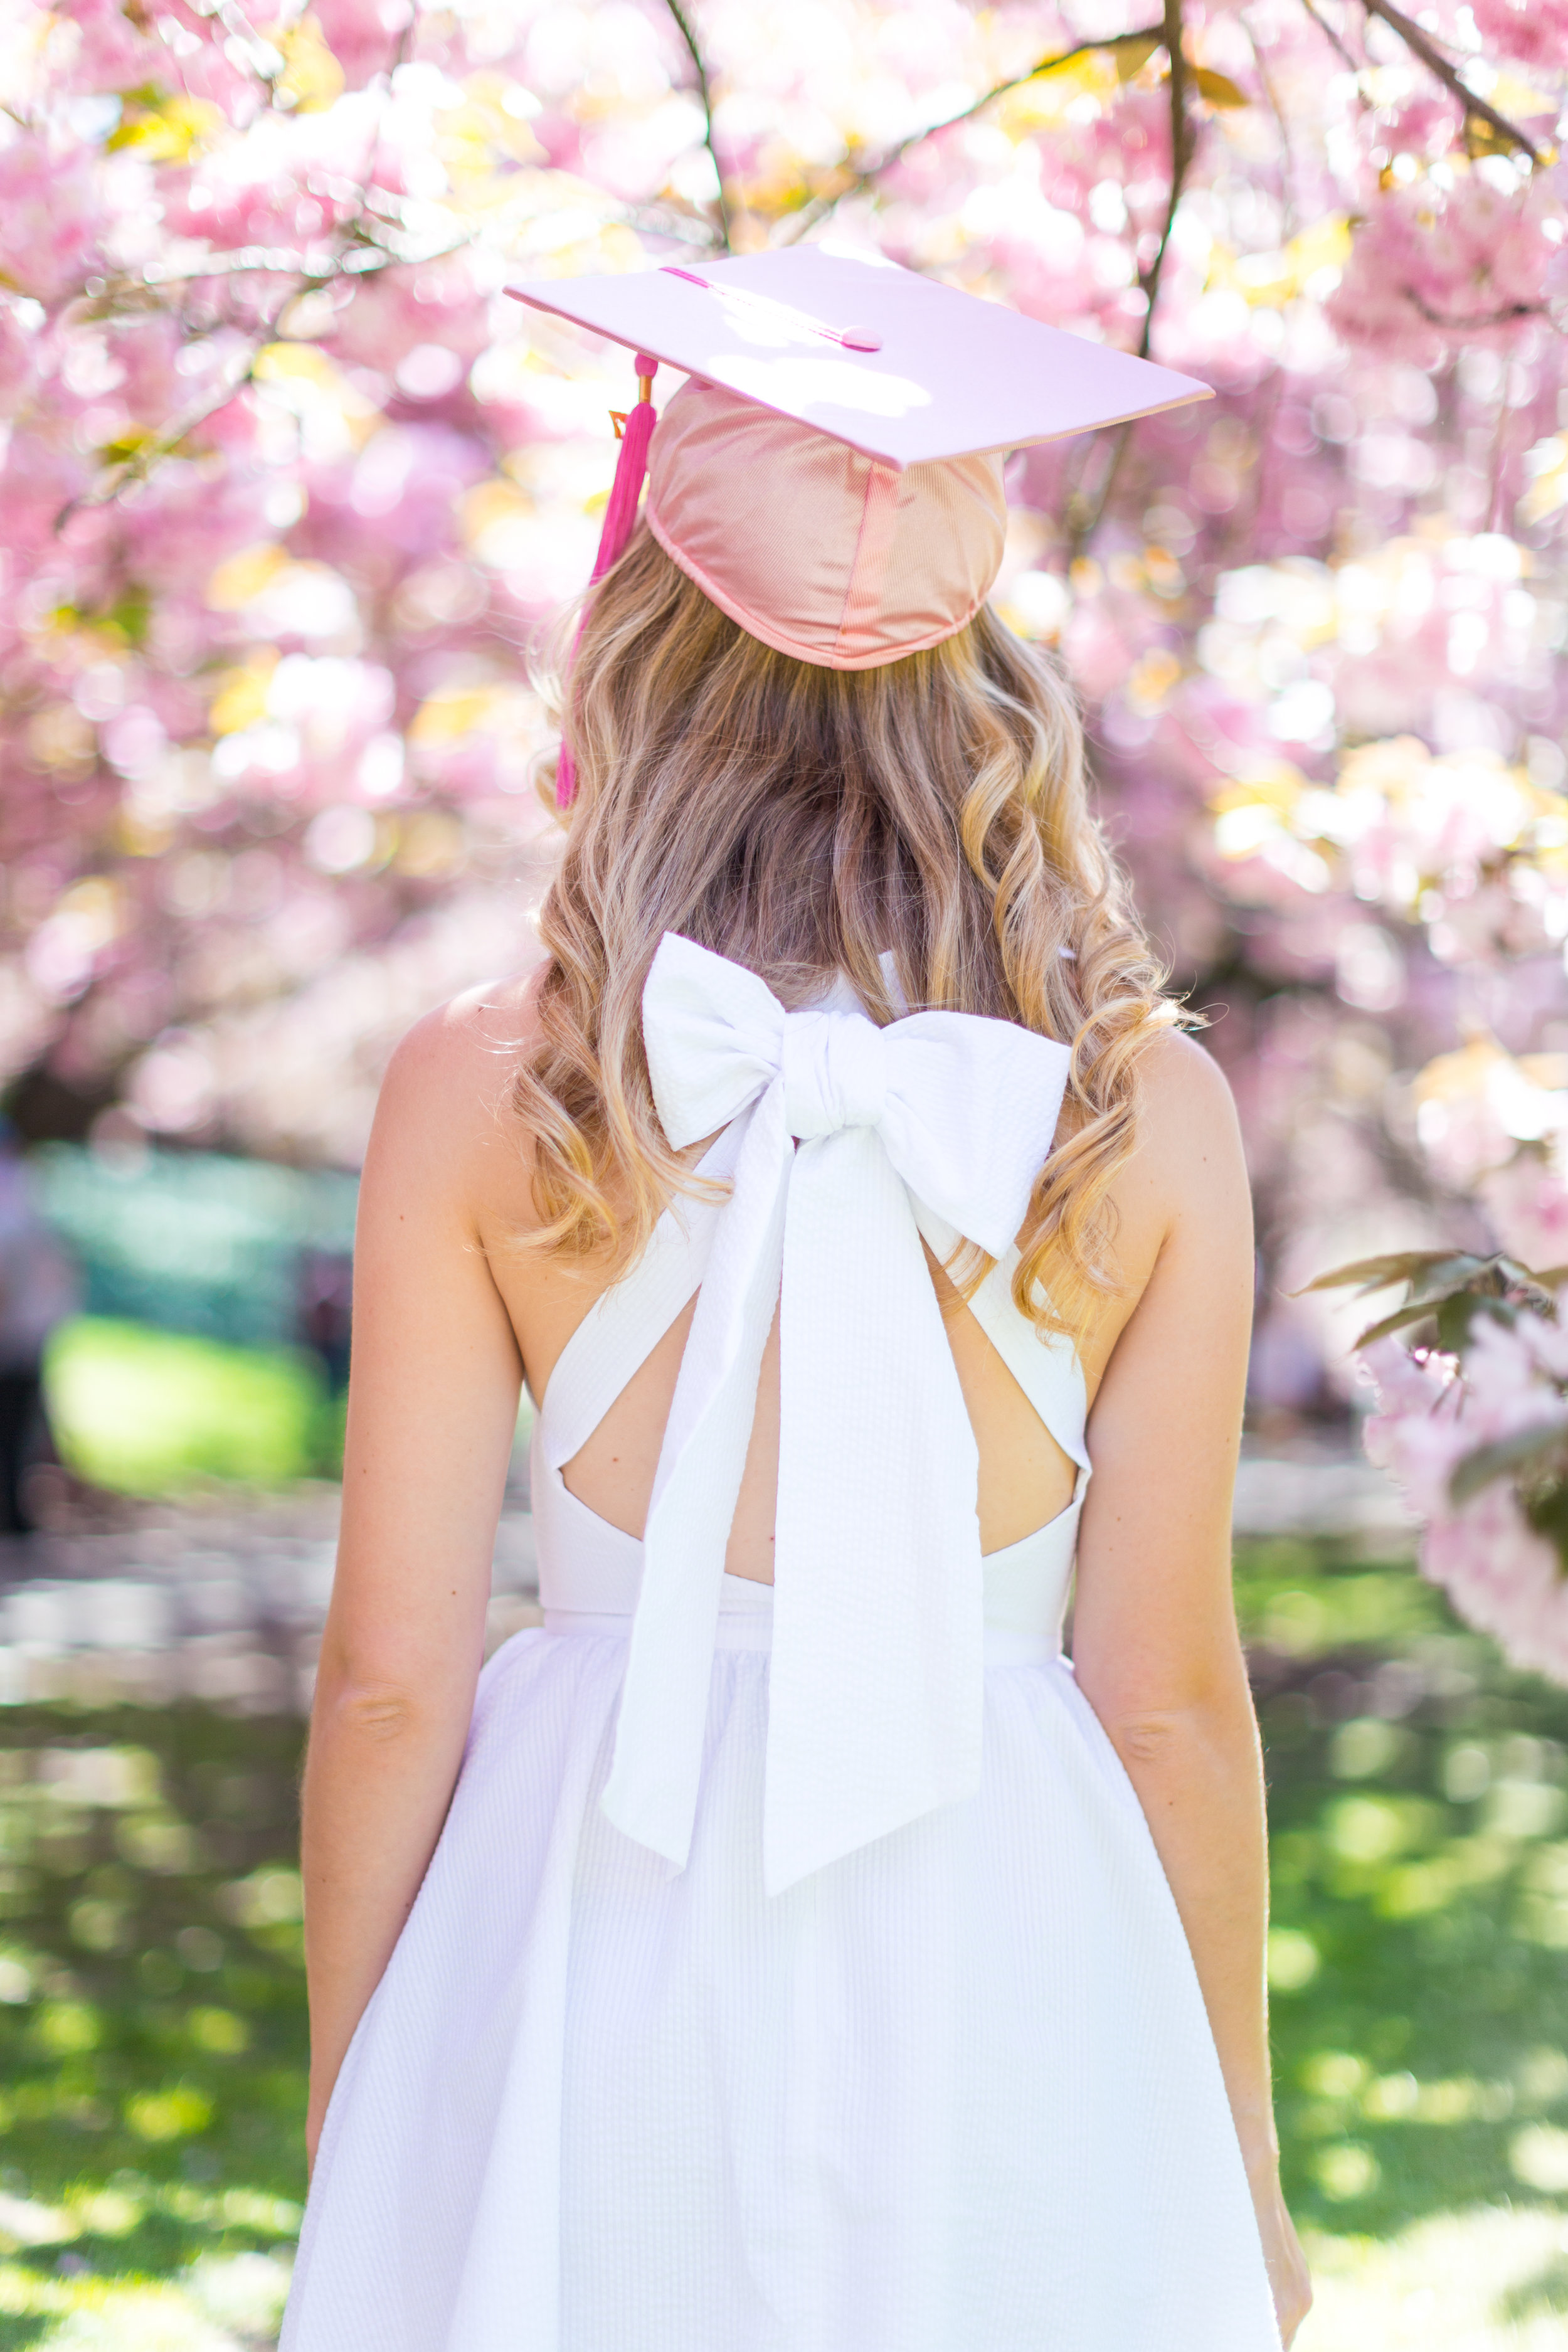 White Graduation Dress Spring Pink Cherry Blossoms NYC-13.jpg